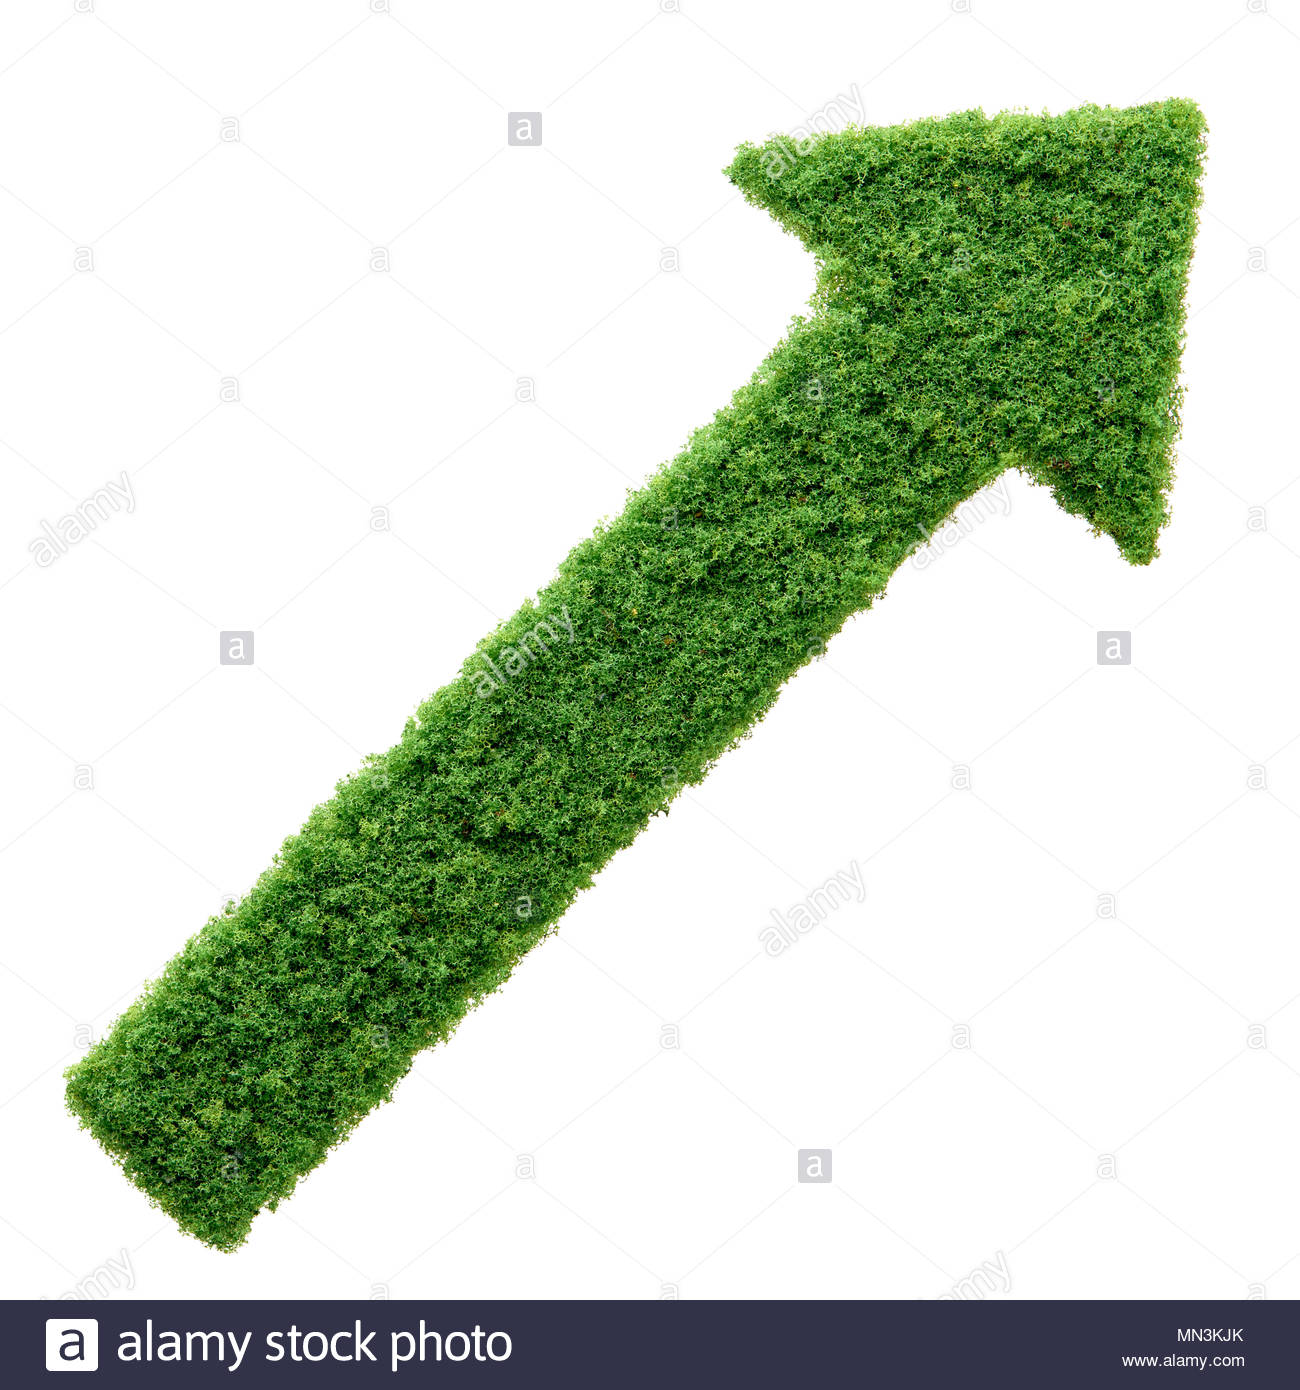 Grass growing in the shape of an arrow, symbolising the care and dedication needed for progress, success and profit in business. - Stock Image